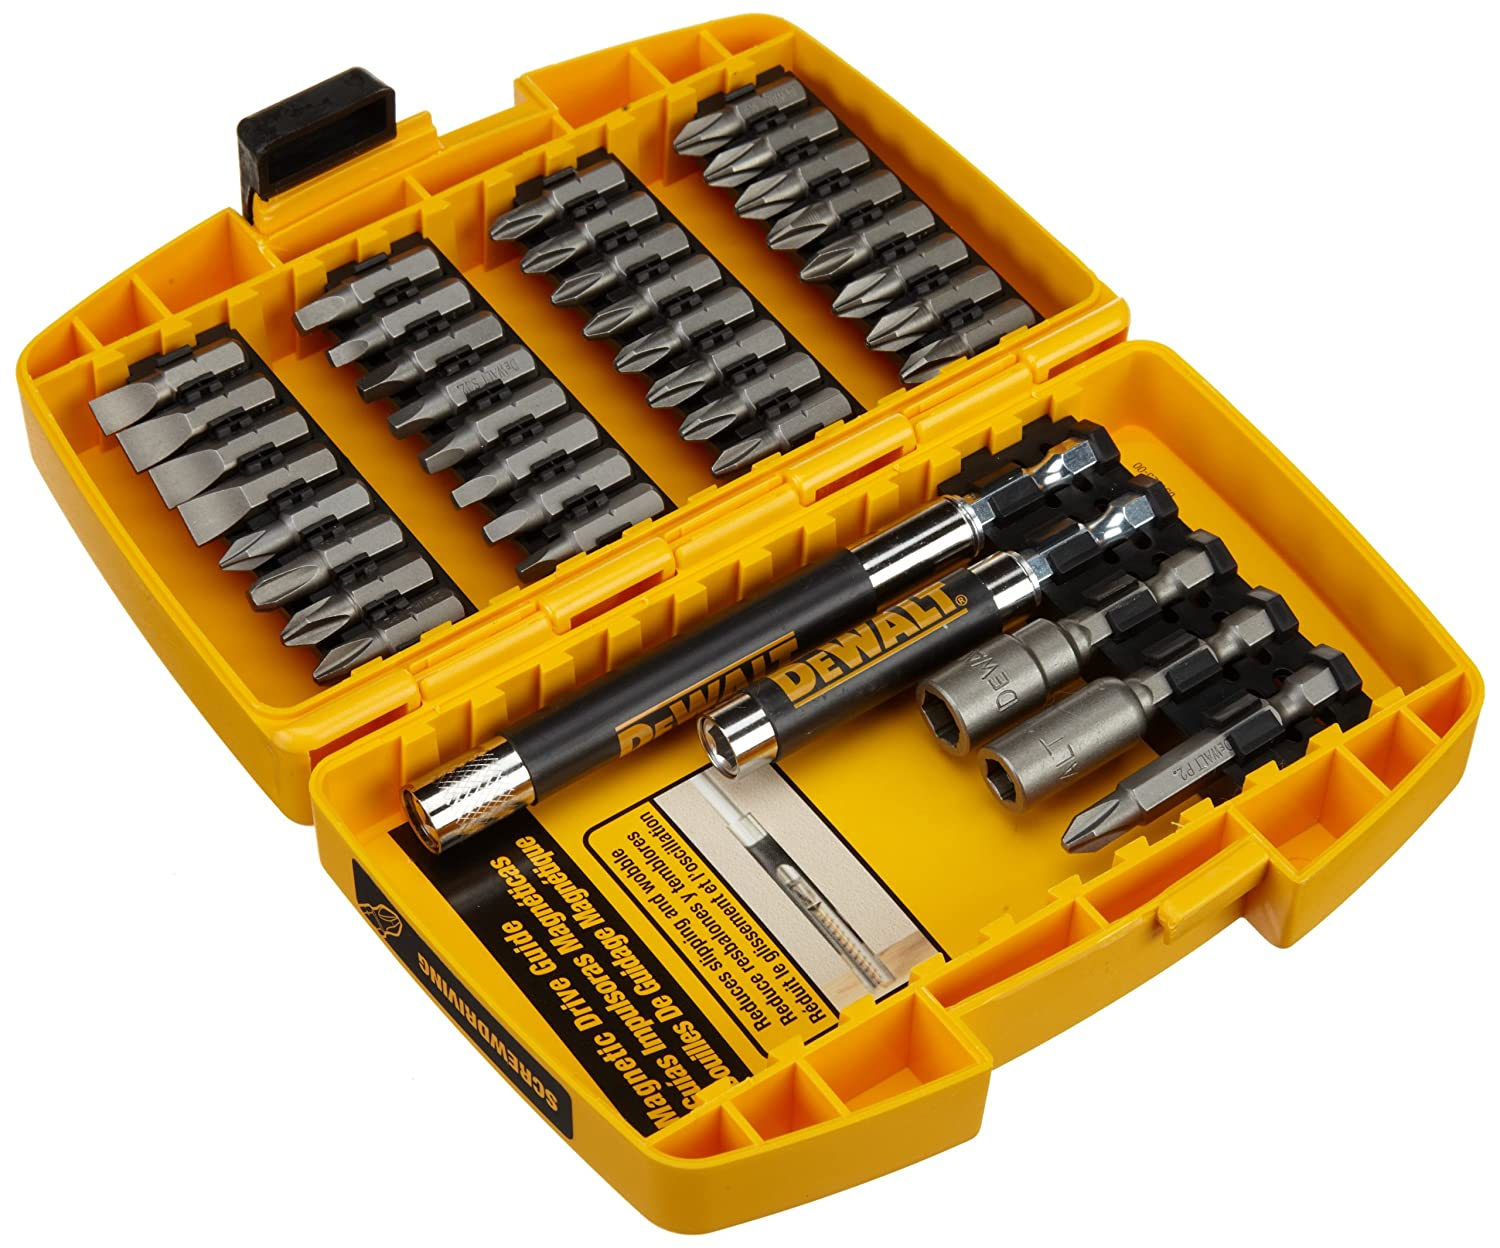 Drill Driver Set Dewalt Dw2176 37 Piece Screwdriving Set Drill Driver Case